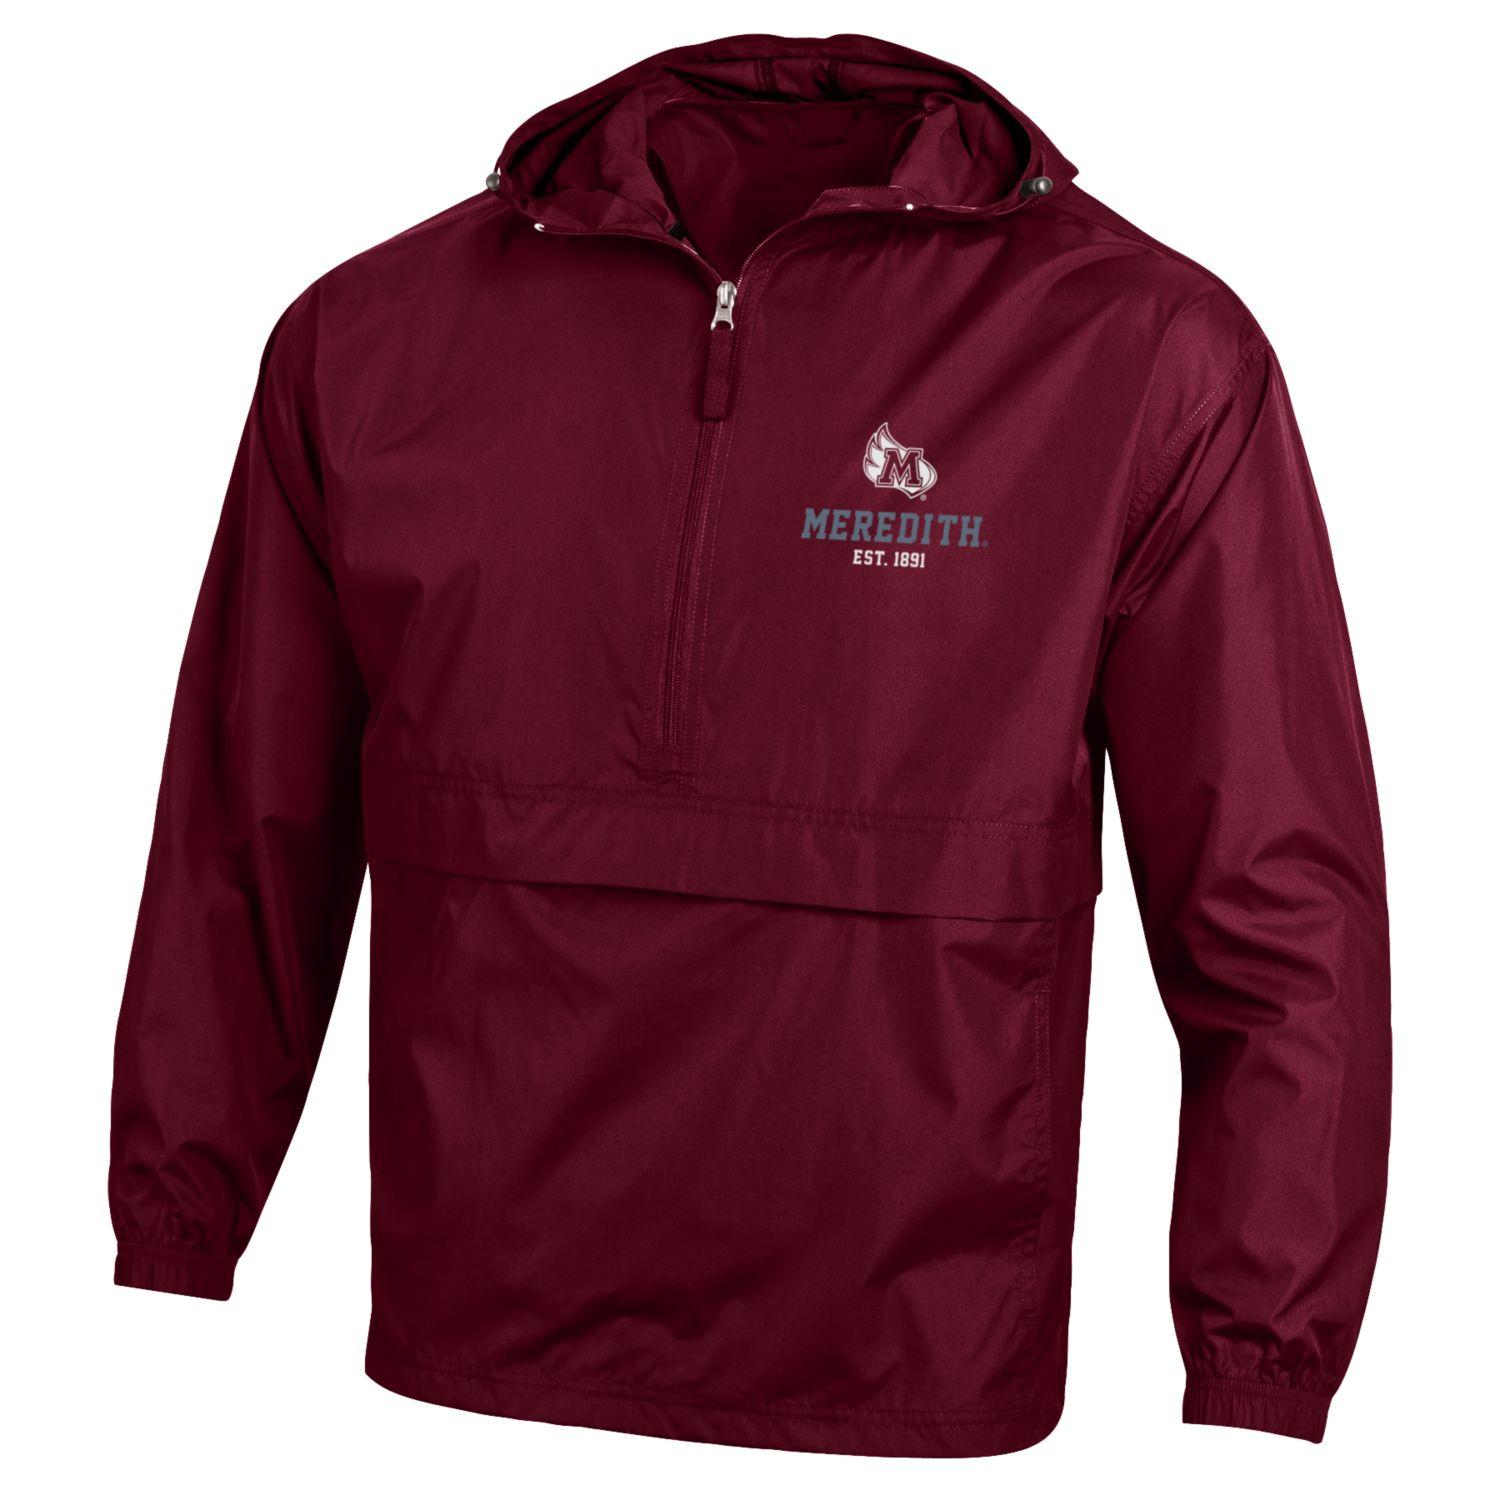 Image for the Packable Jacket 1/2 Zip, Maroon, M-Wing product